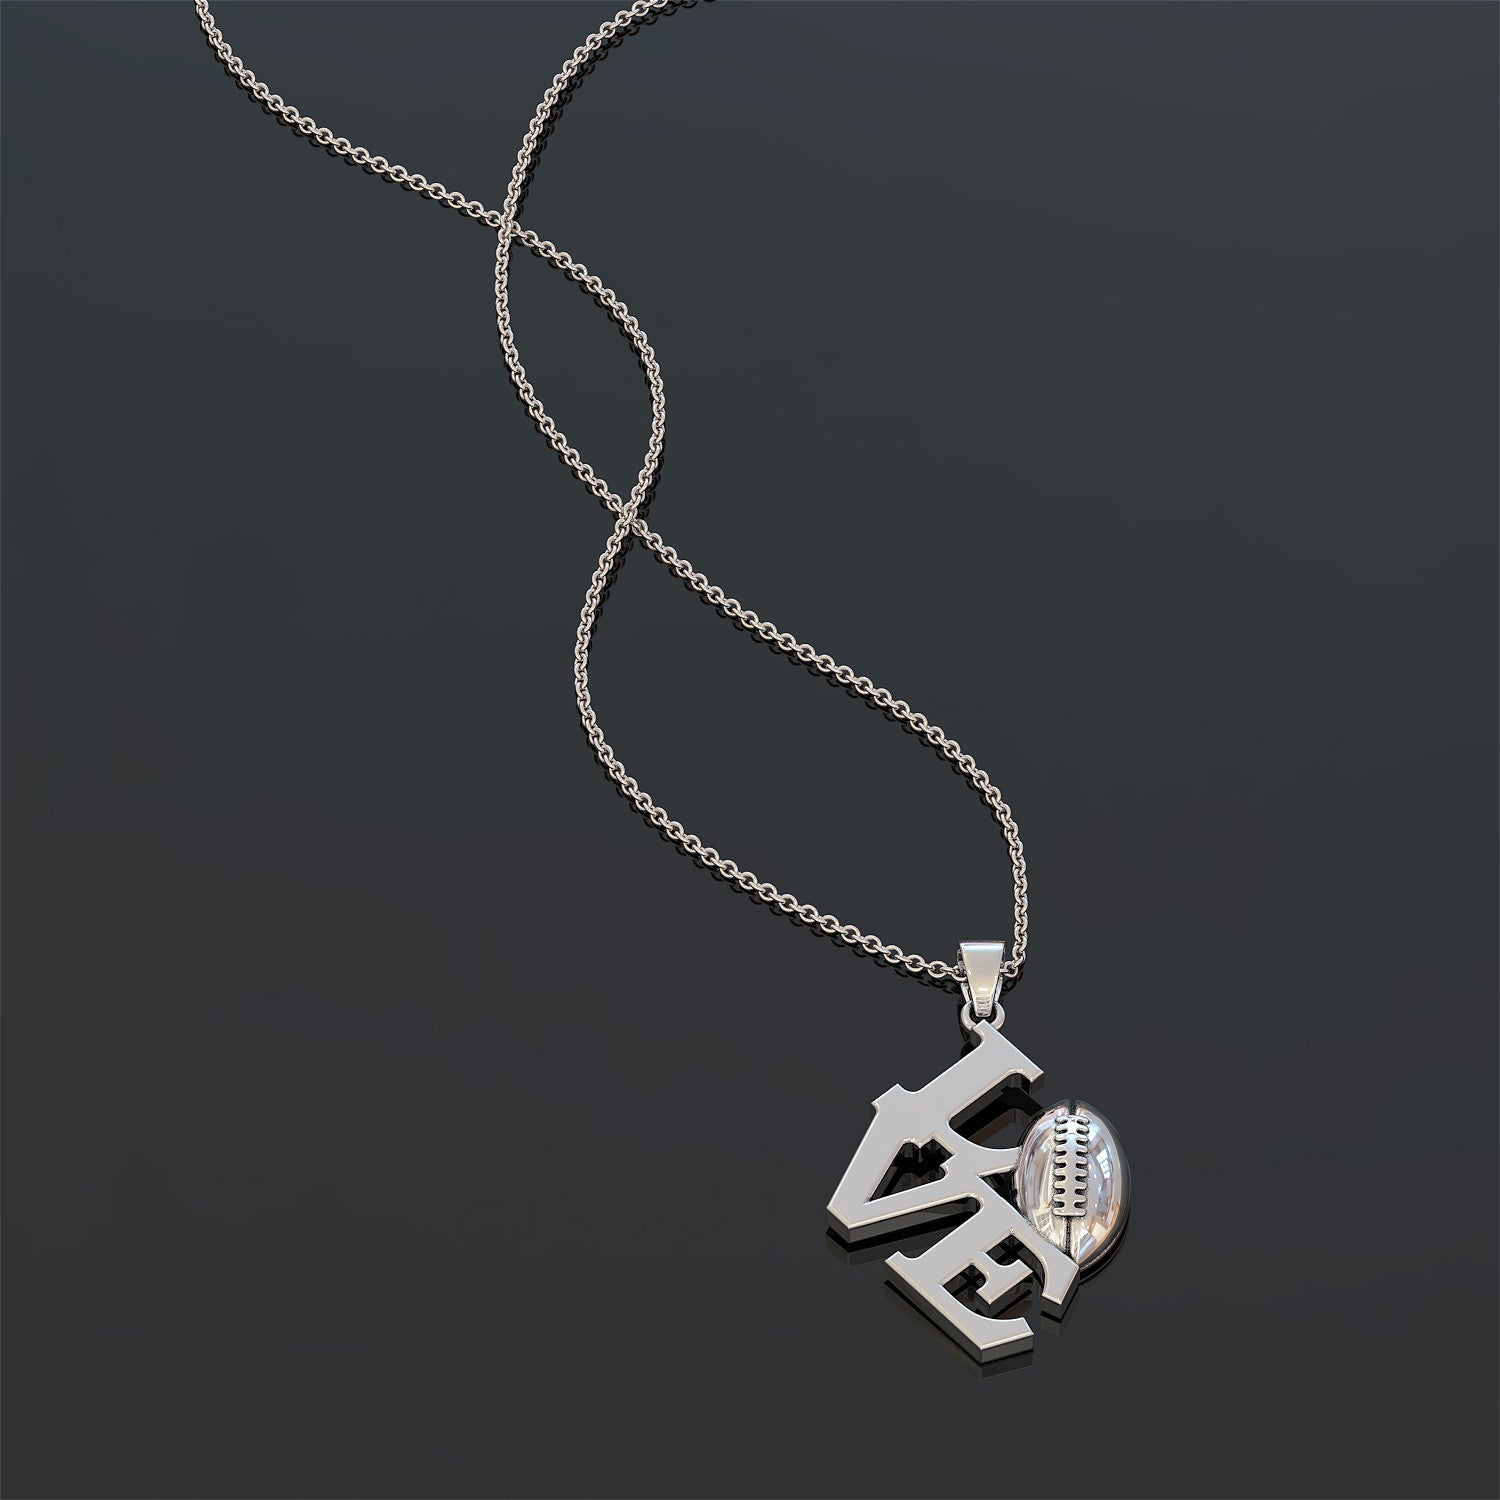 Football (American) Love II Necklace